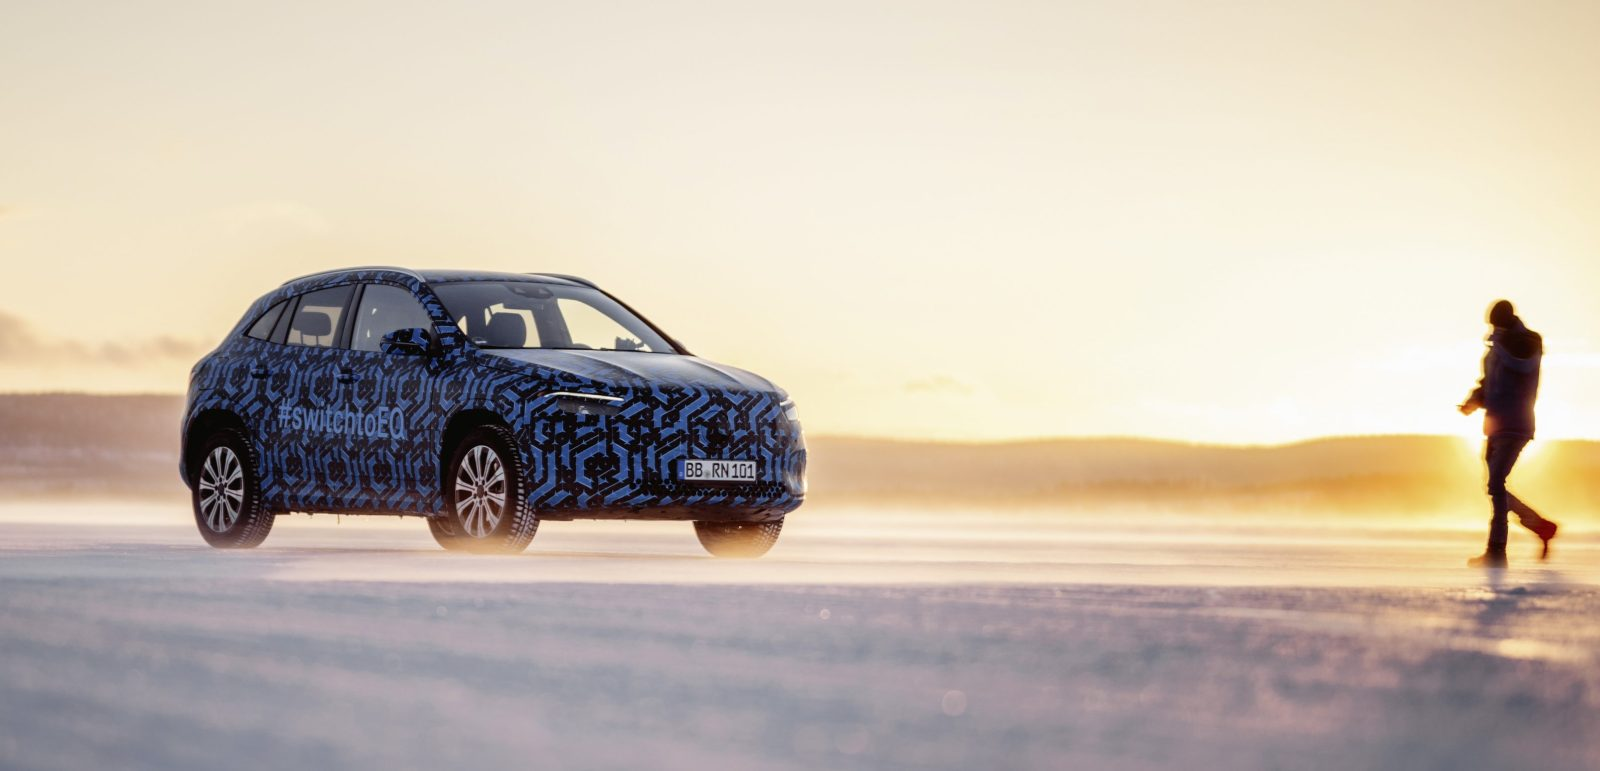 Mercedes-Benz shares new pictures of EQA electric crossover in winter testing - Electrek